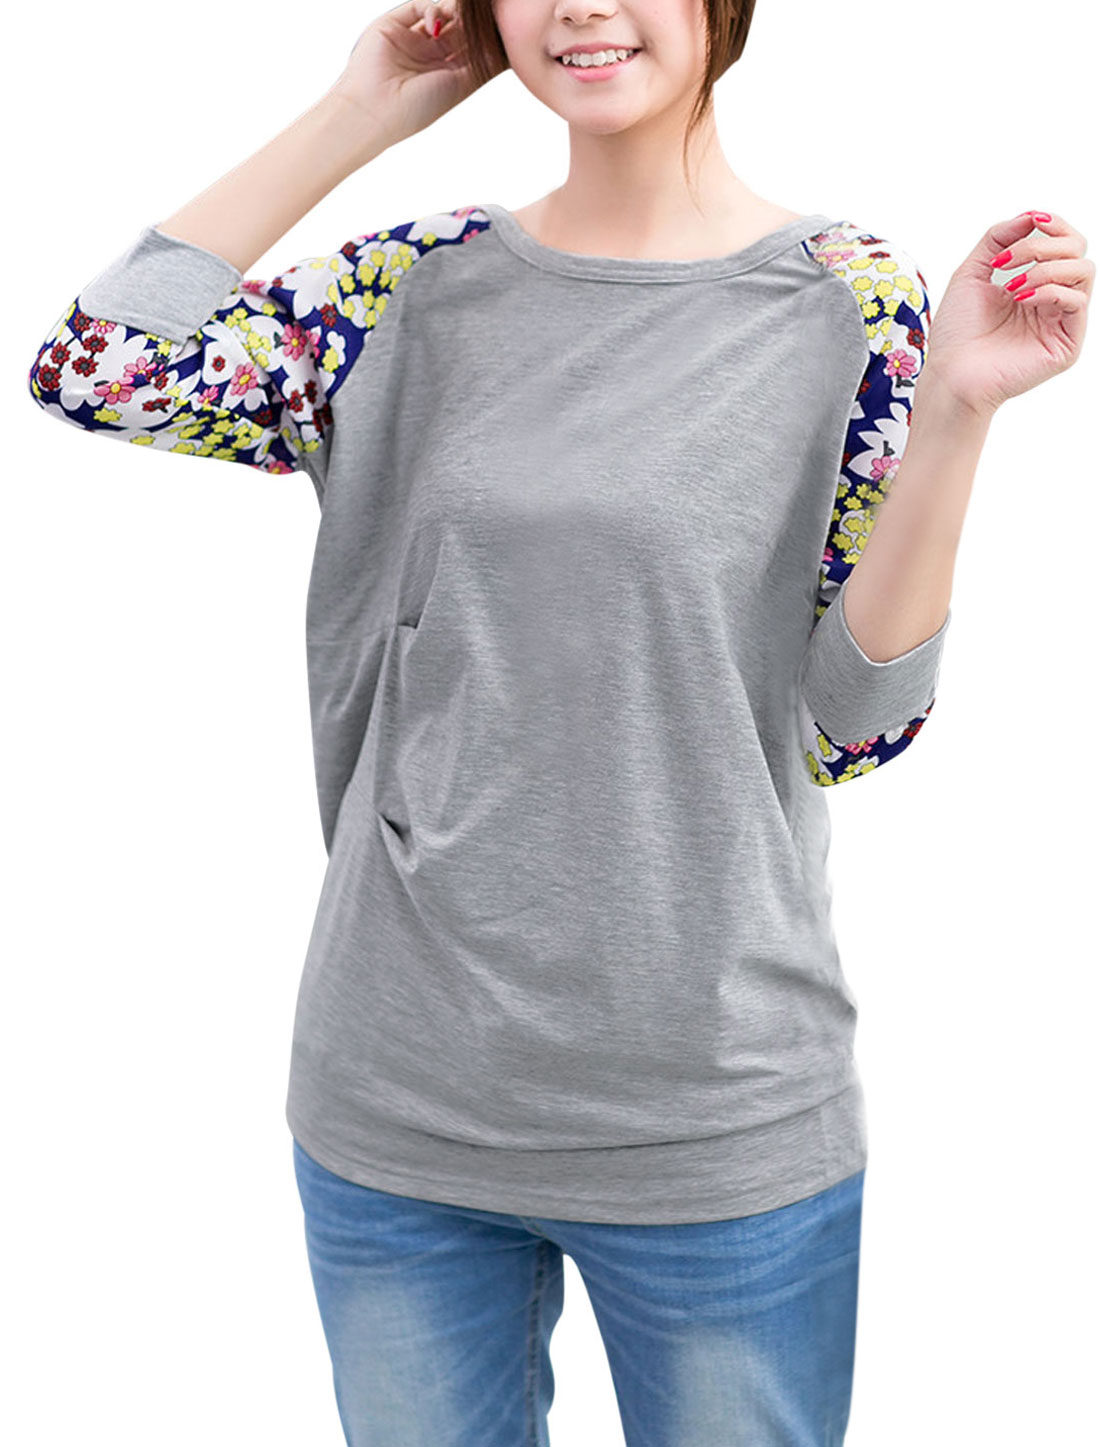 Lady Chiffon-Patch 3/4 Raglan Sleeve Floral Prints Tunic Top Gray M